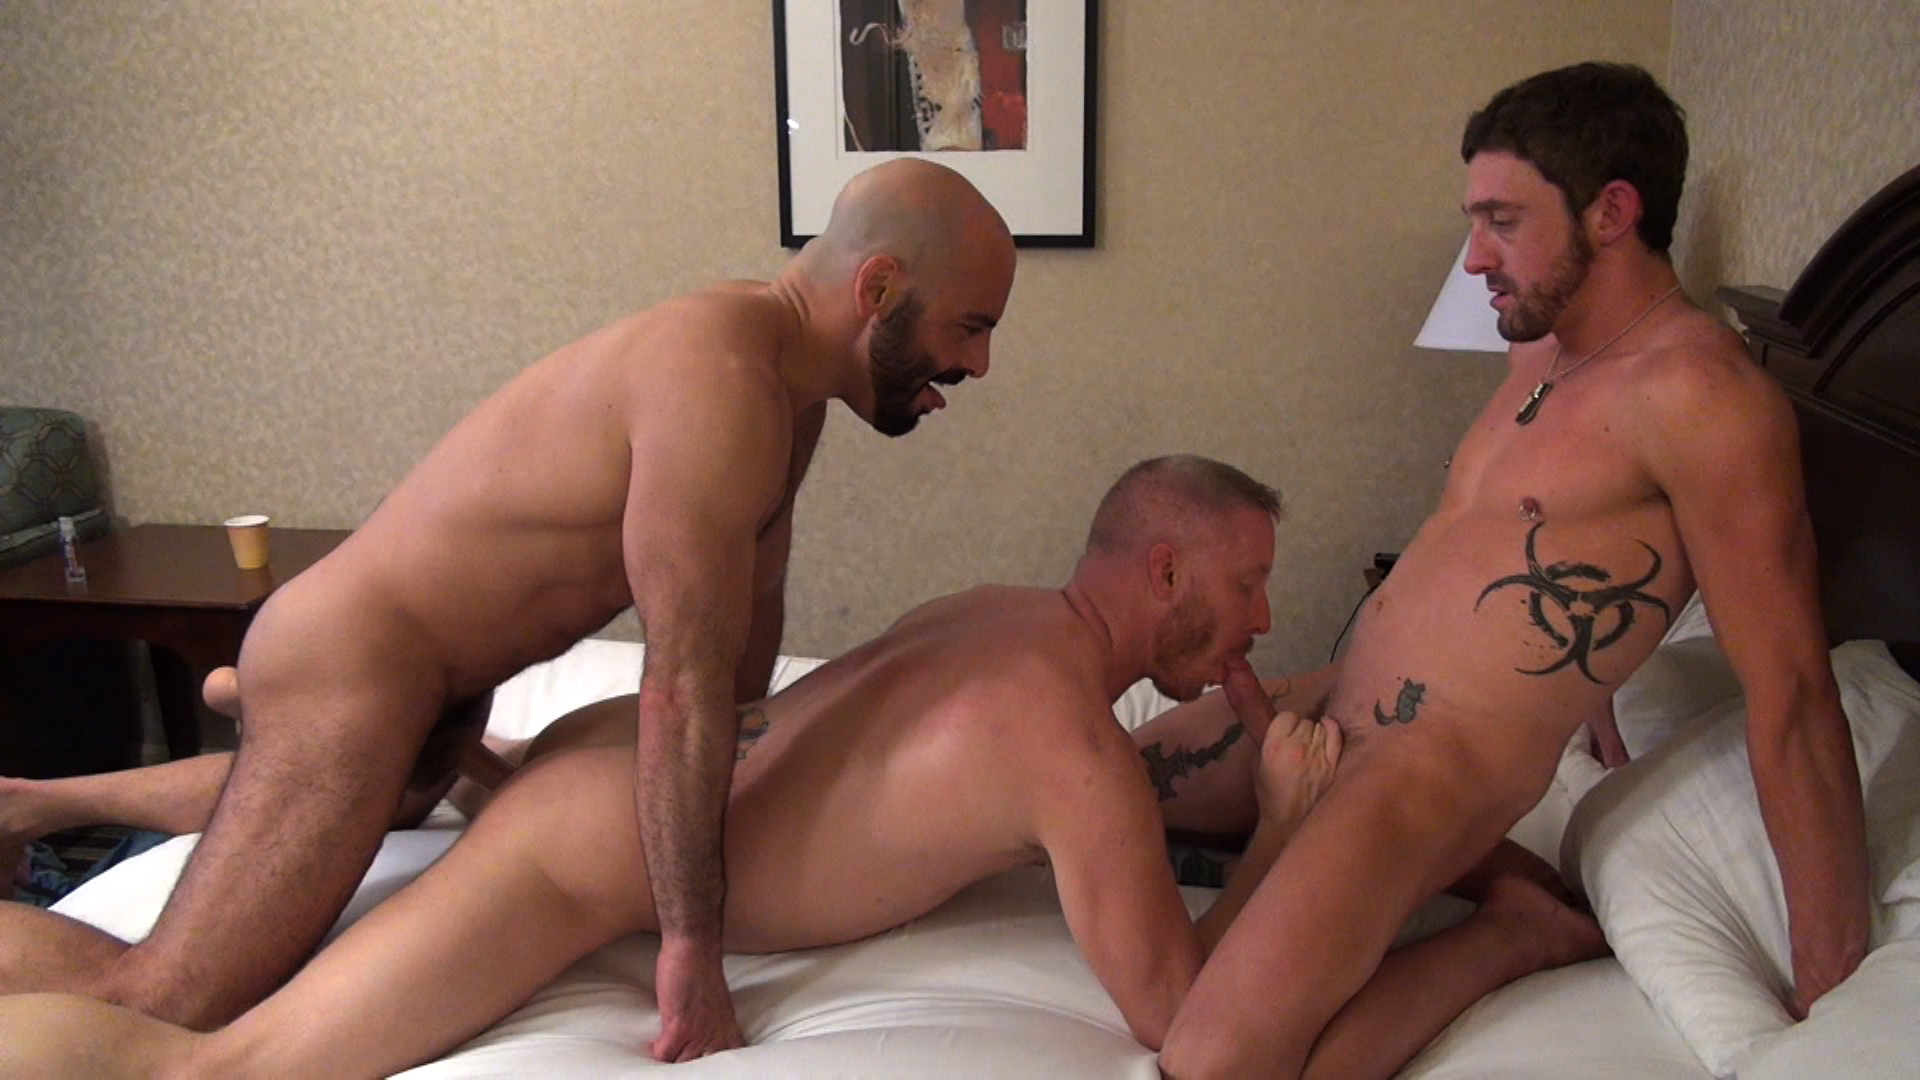 Adam Ruso Porn adam russo, dallas parker & kevin tyler - gay - adam russo and